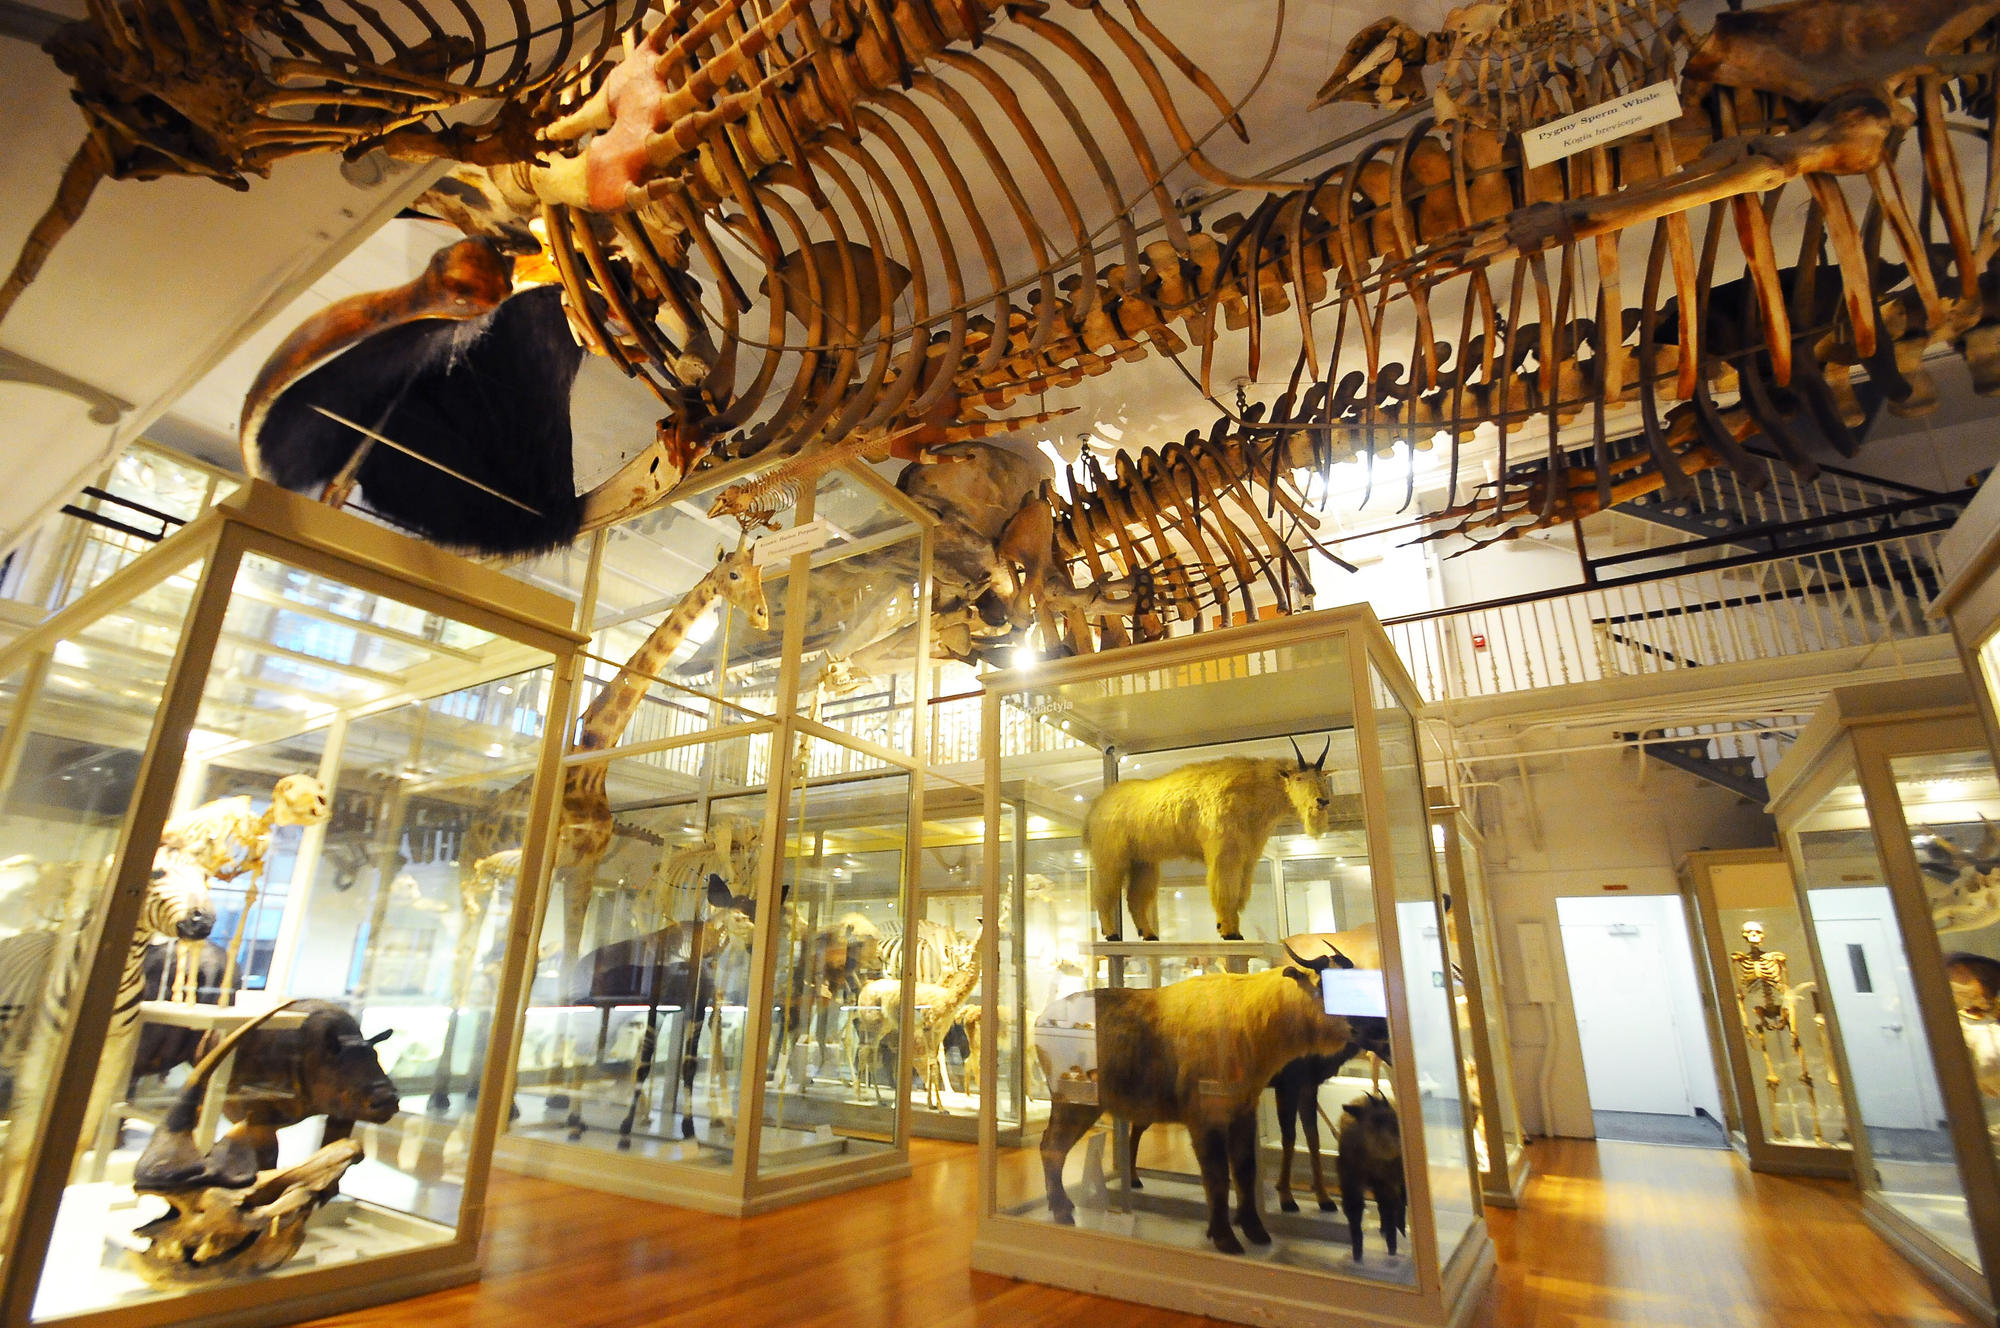 Larger room with whale skeletons hanging from the ceiling and animals in cases.